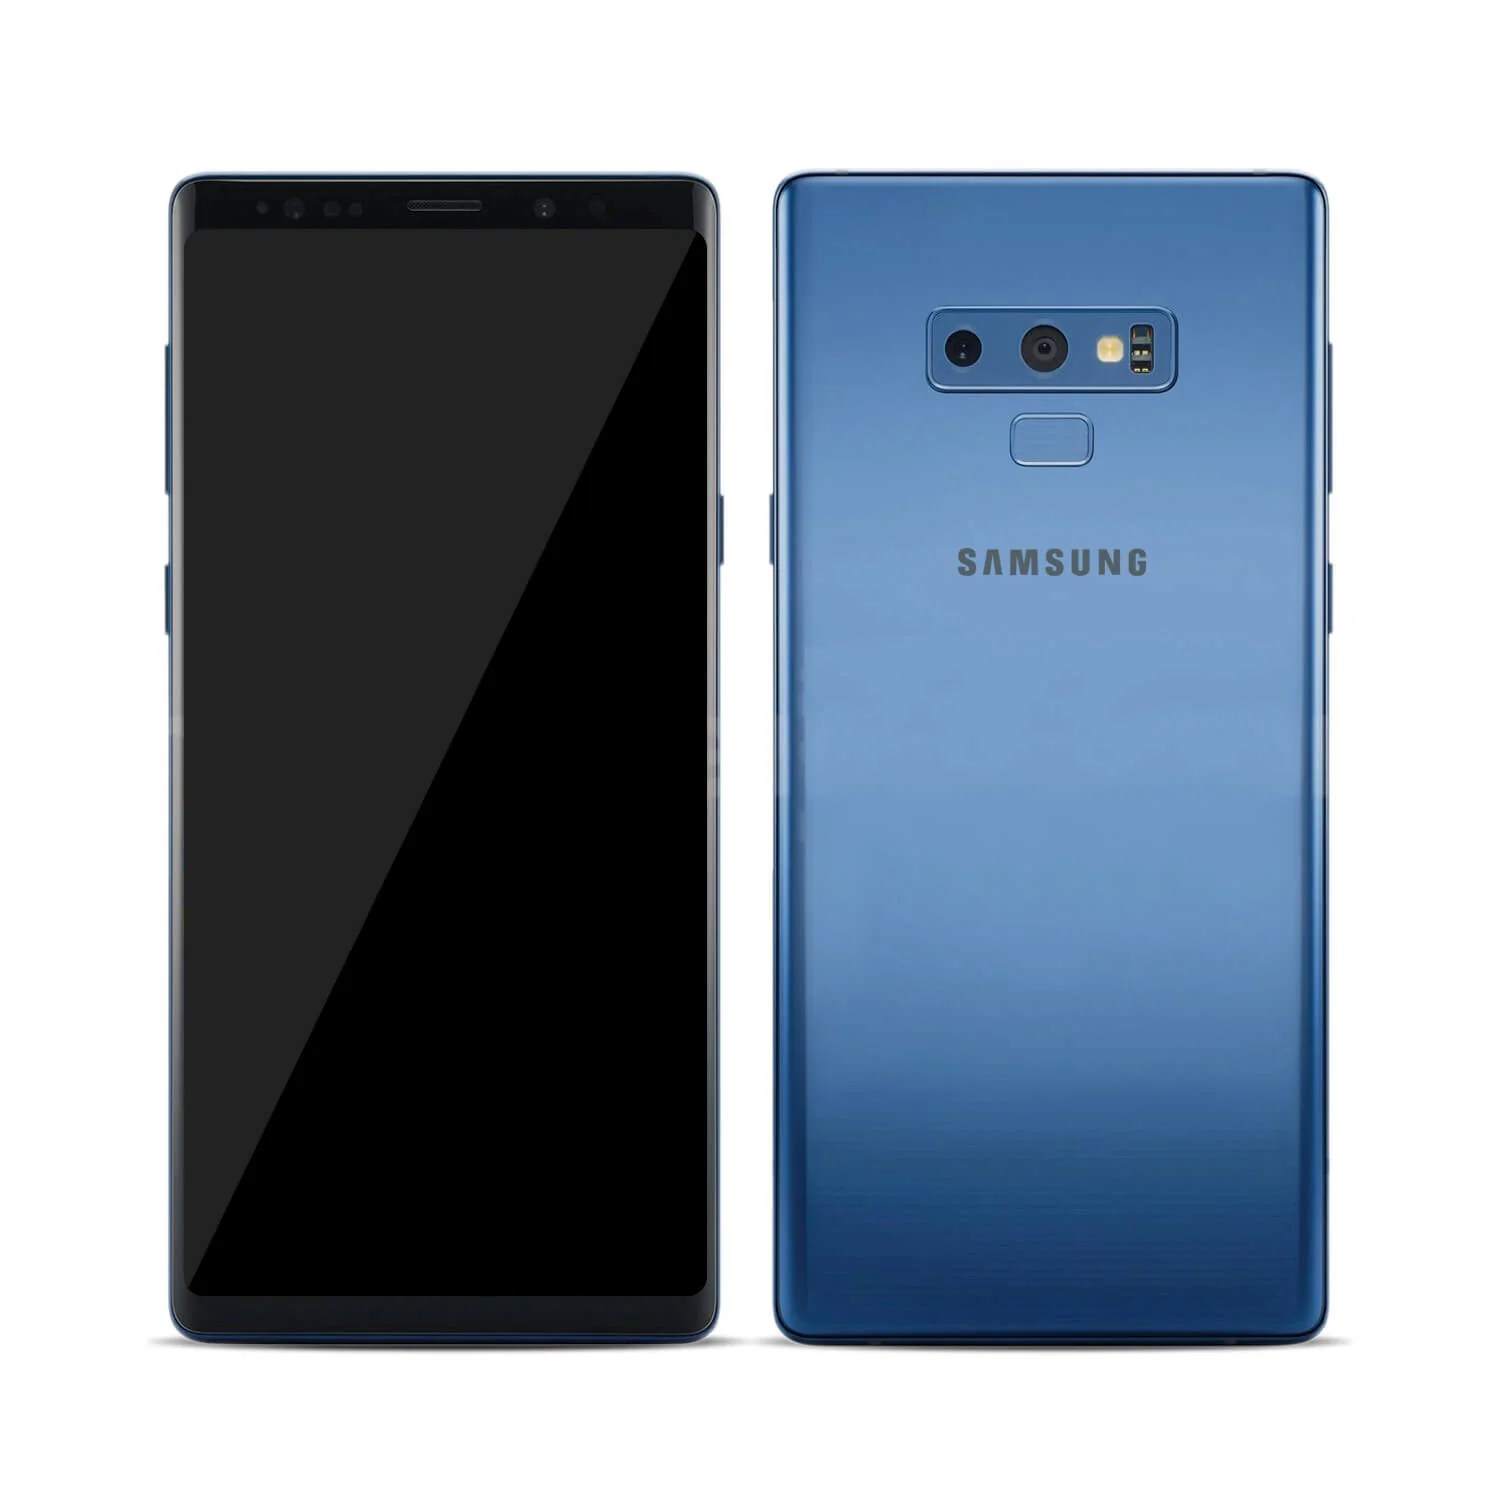 Samsung Galaxy Note 9 Skins and Wraps | XtremeSkins